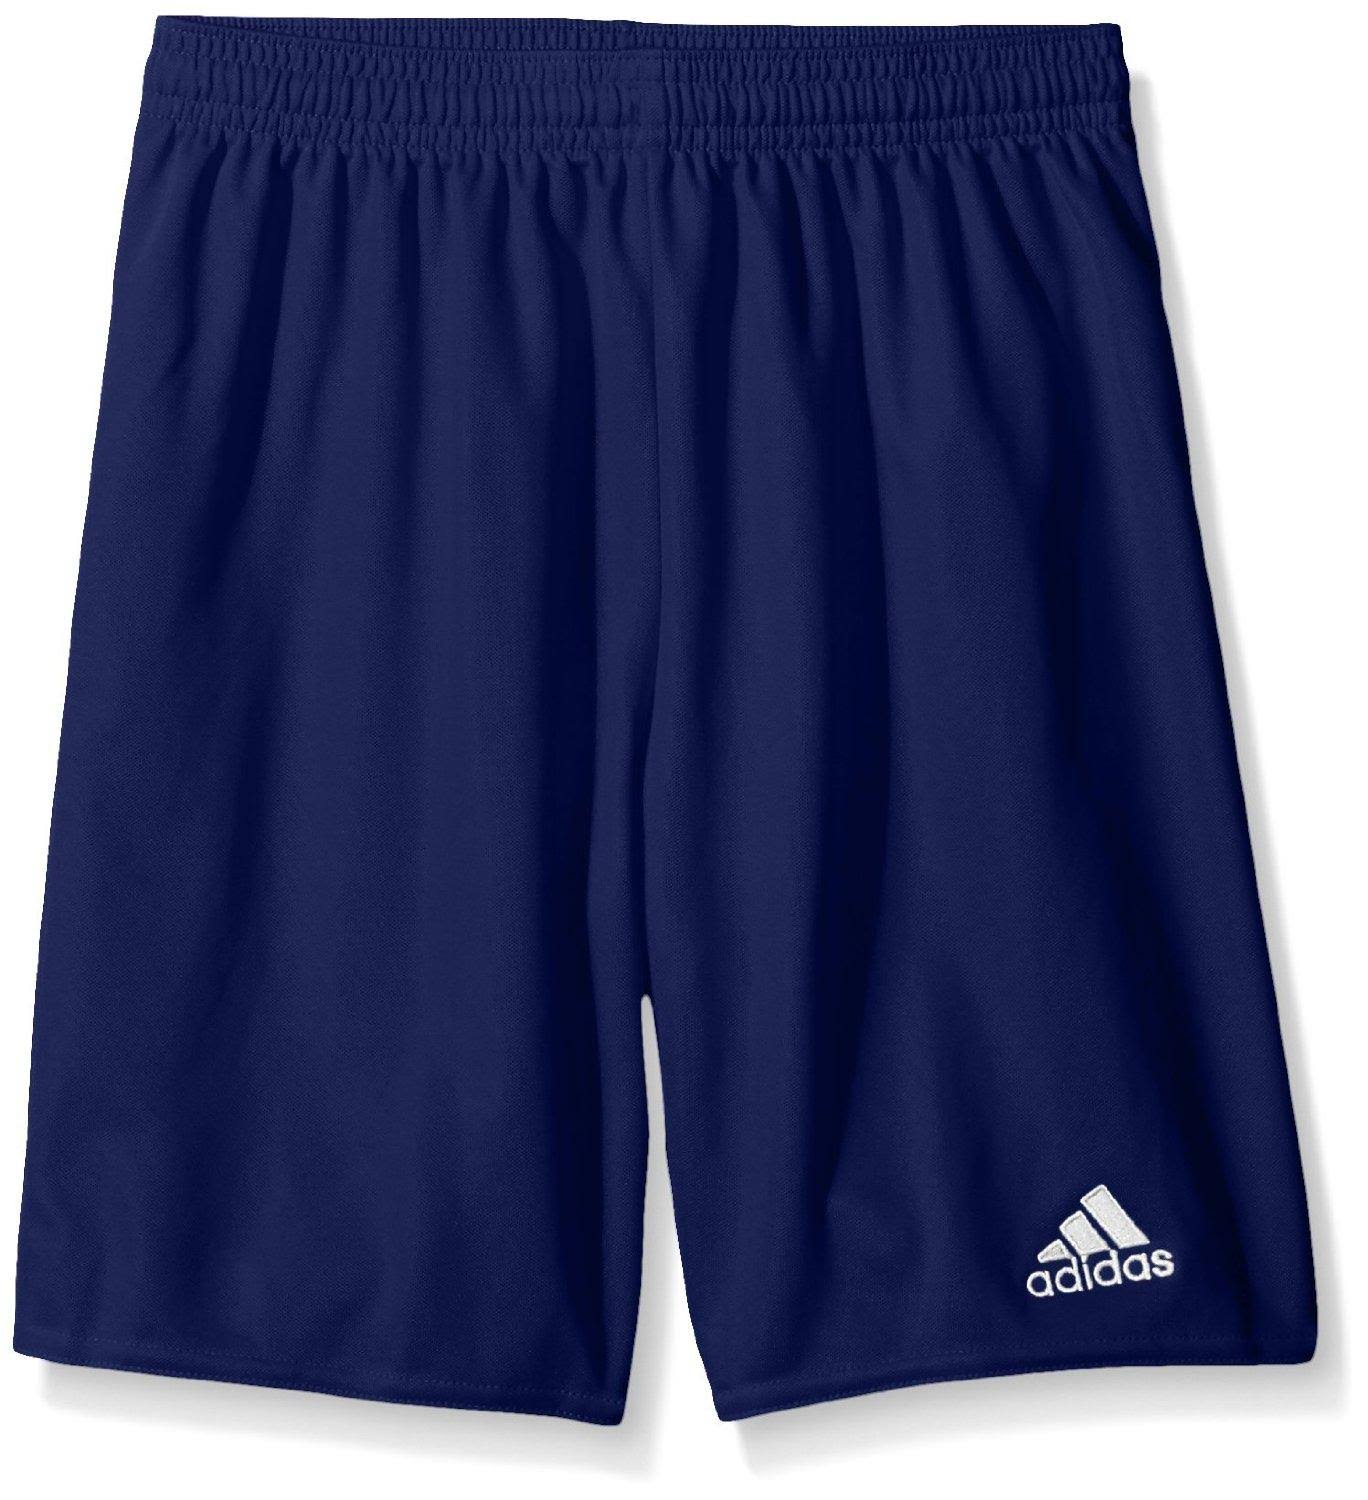 Adidas Performance Youth Parma 16 Shorts - Blue, Small